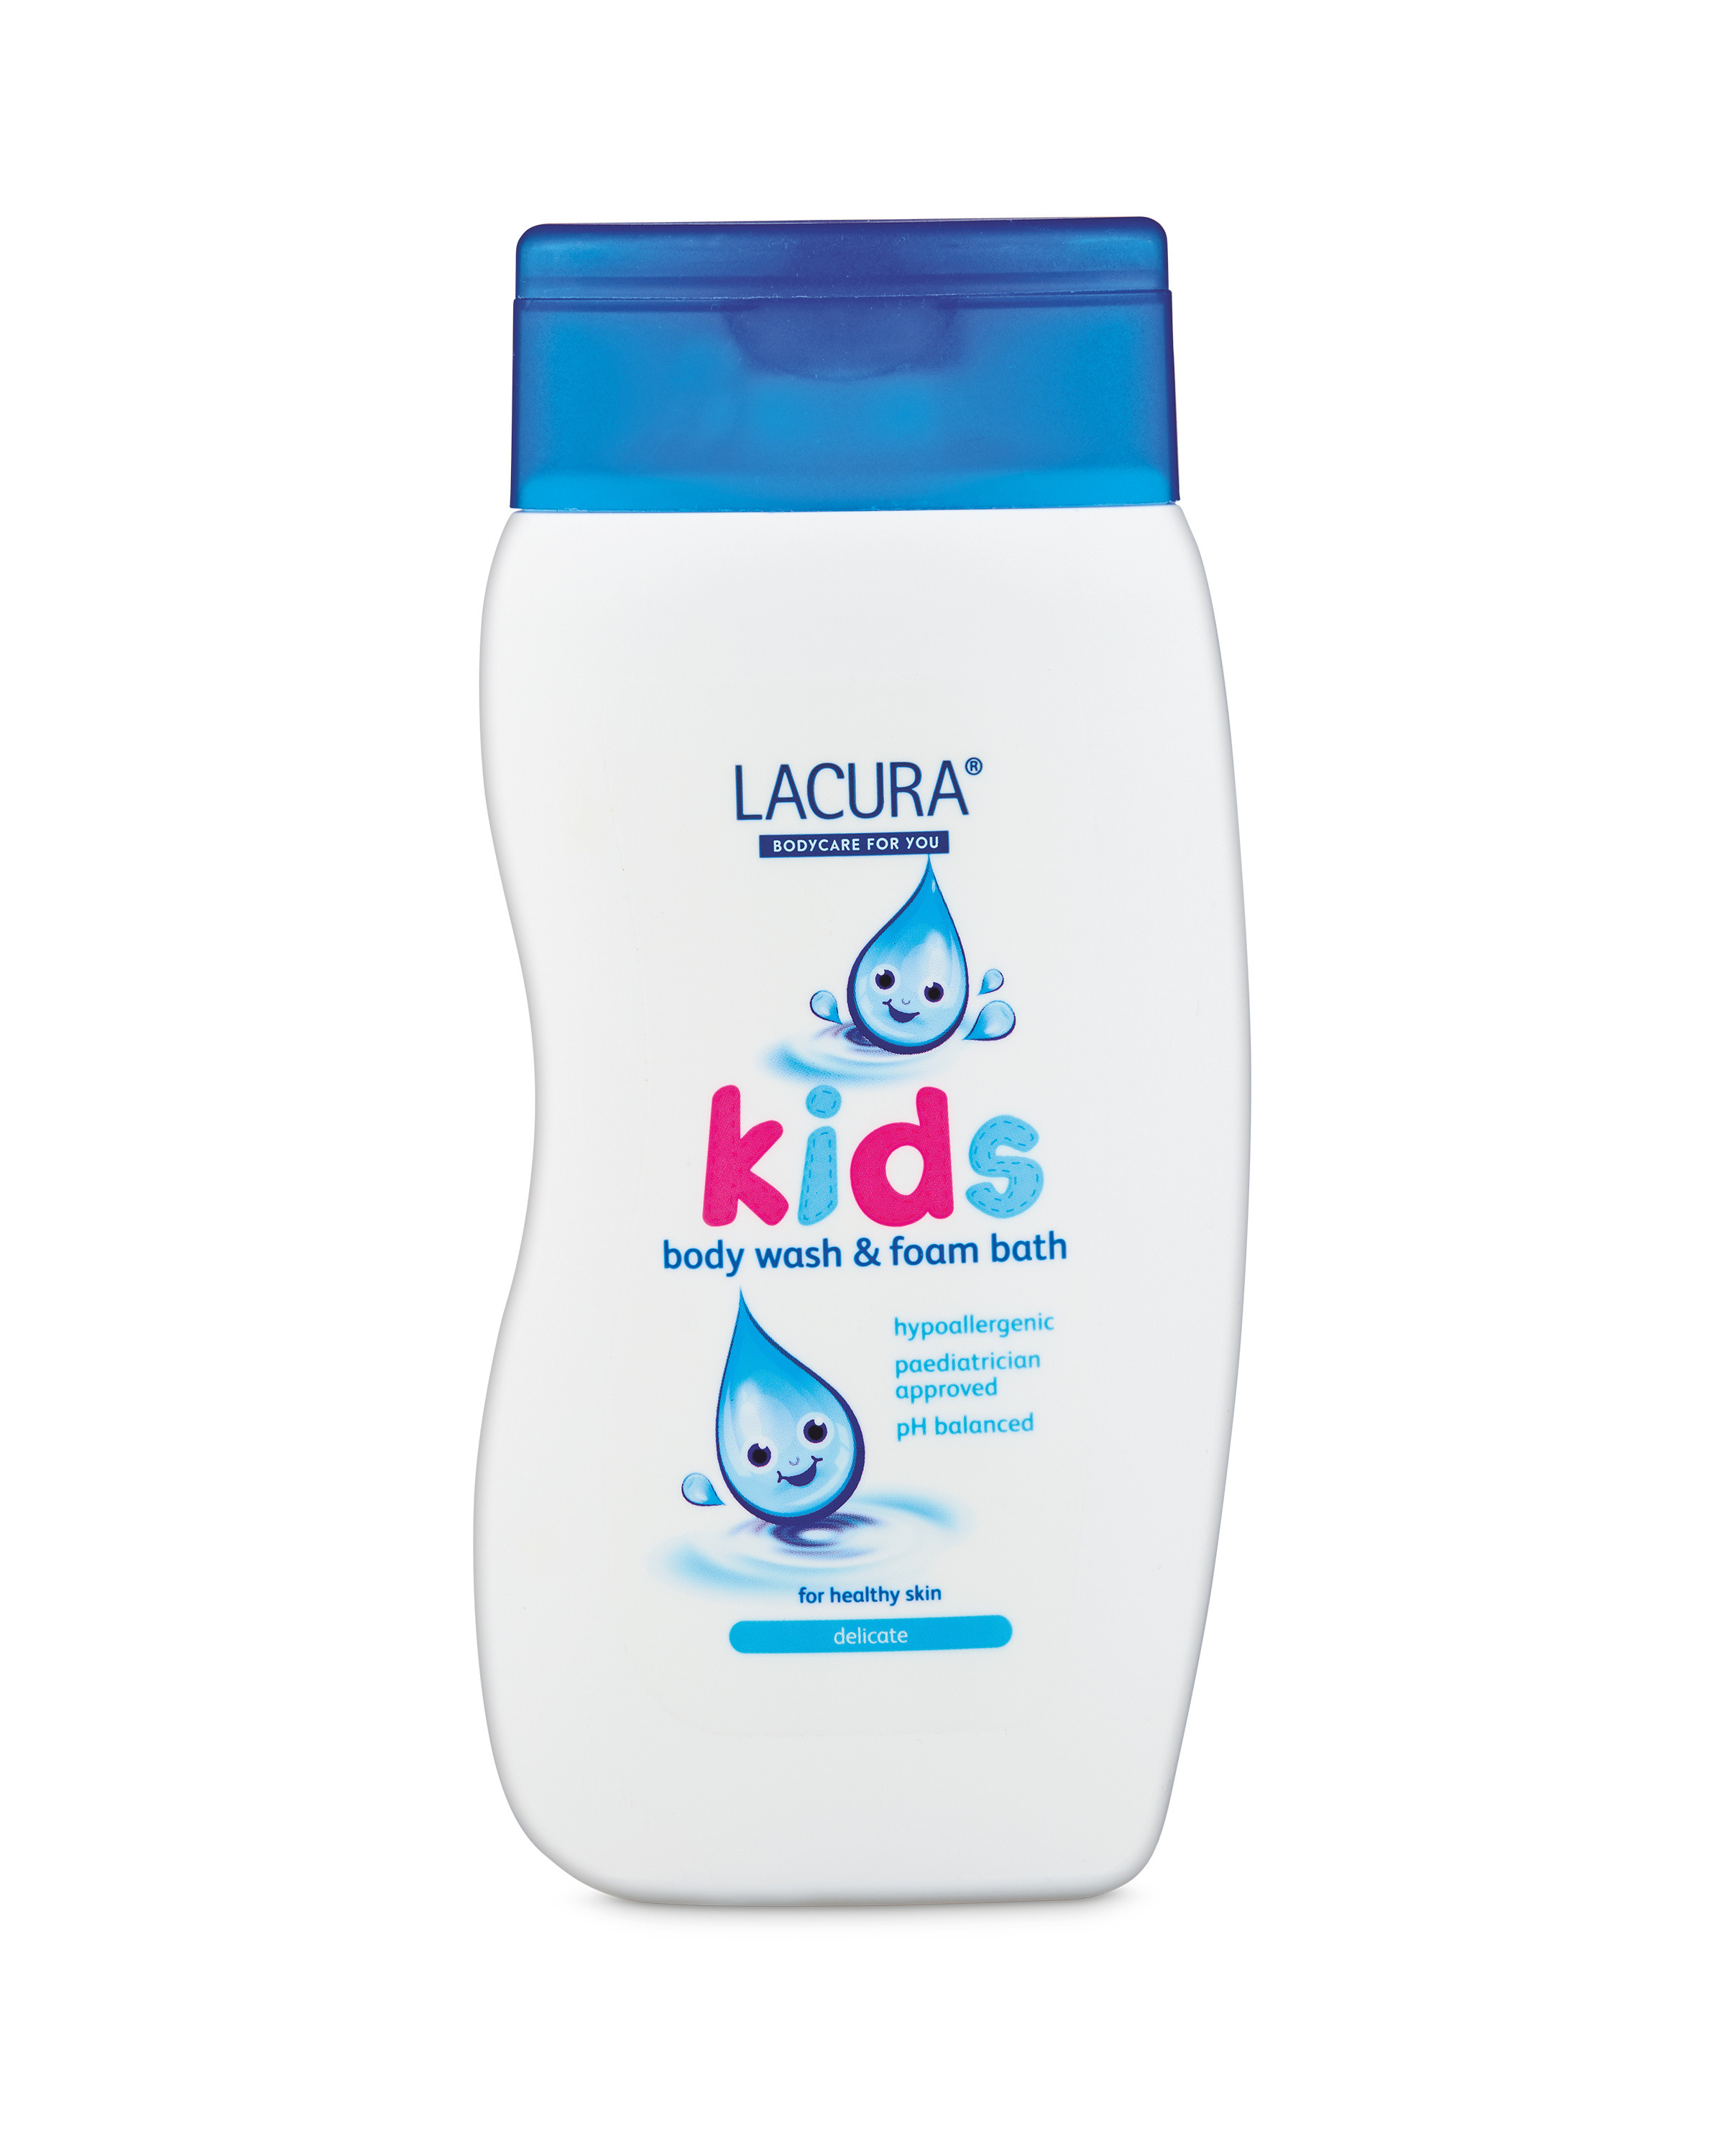 Lacura Kids Body Wash & Foam Bath - ALDI UK